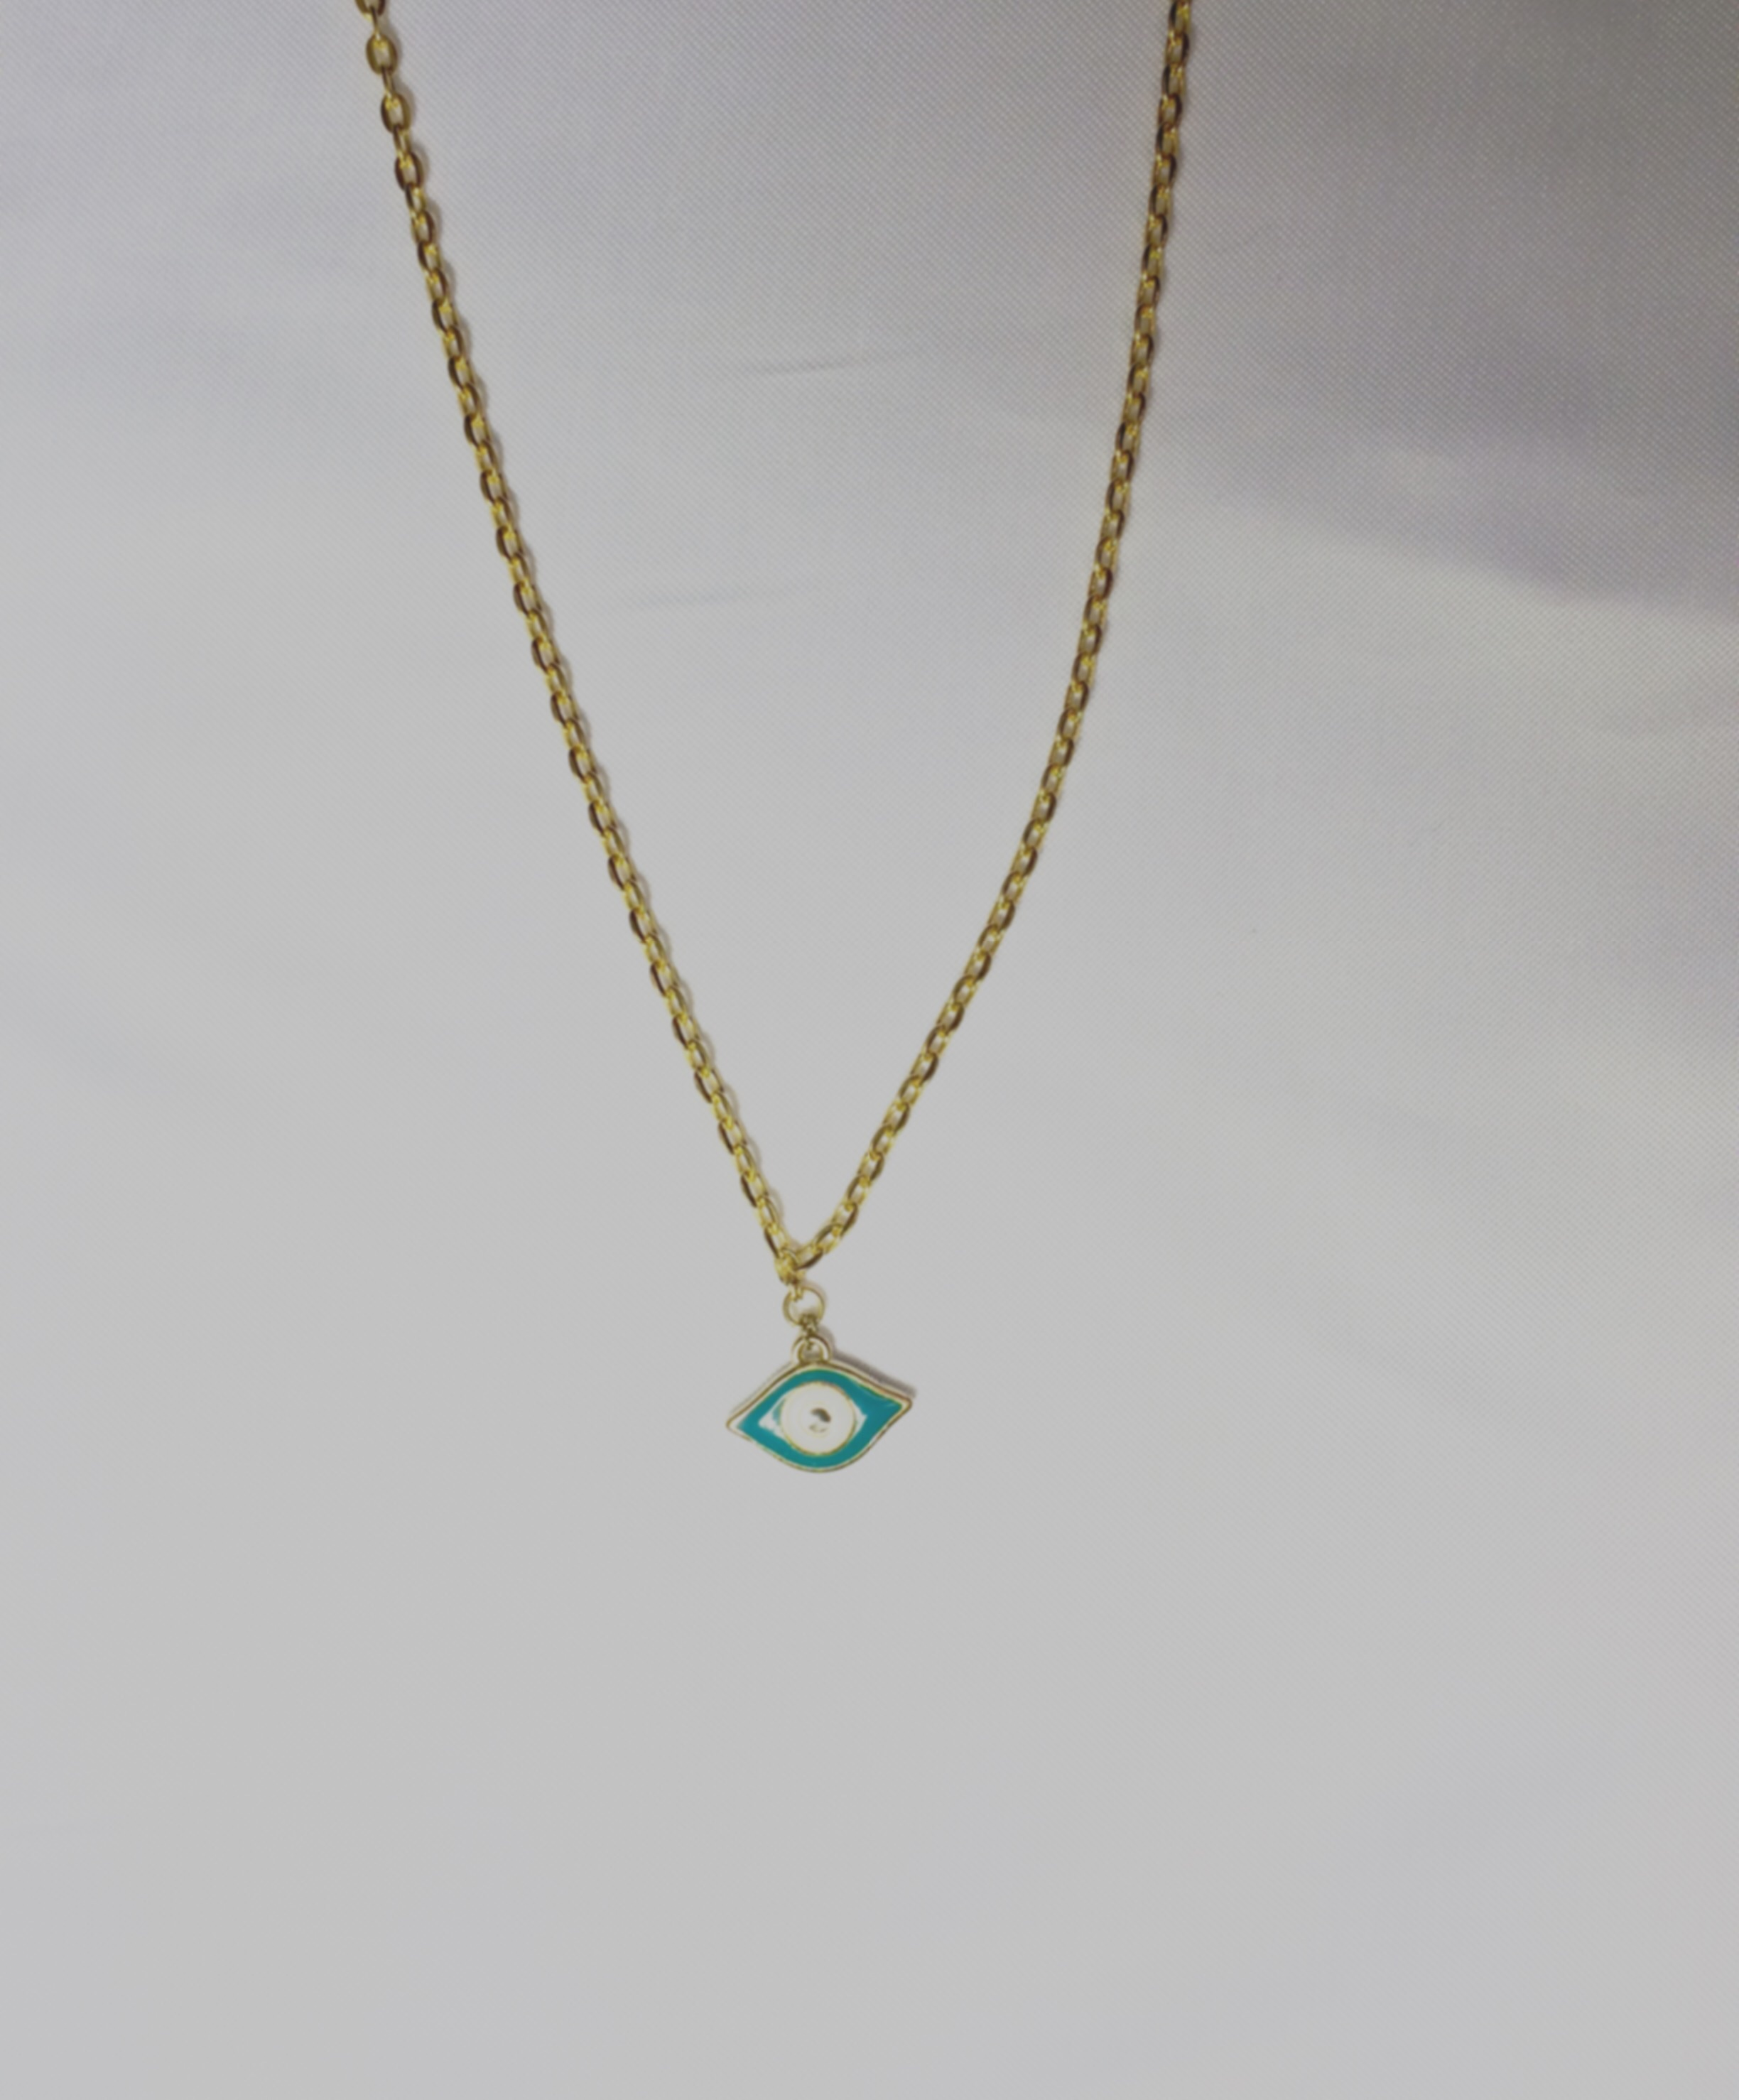 pendant necklace store goat eye